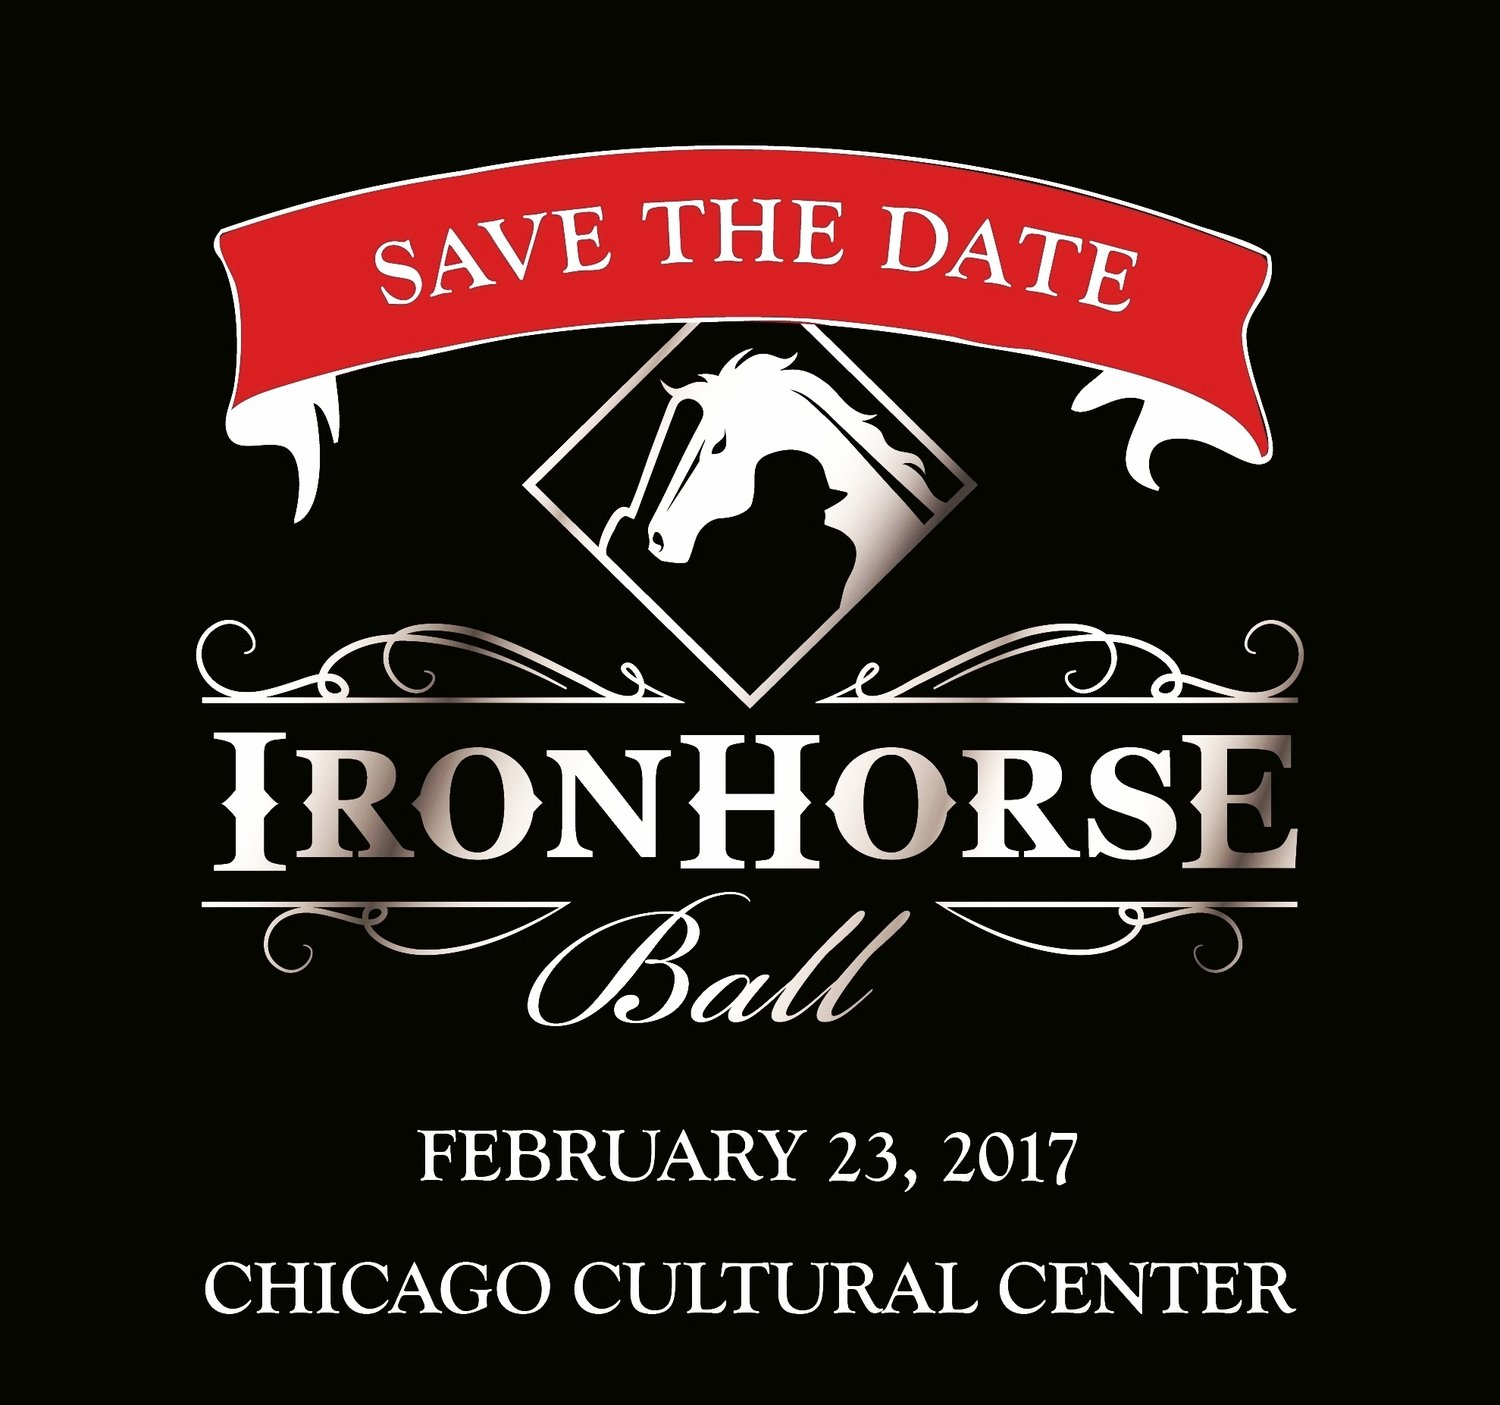 The IronHorse Ball